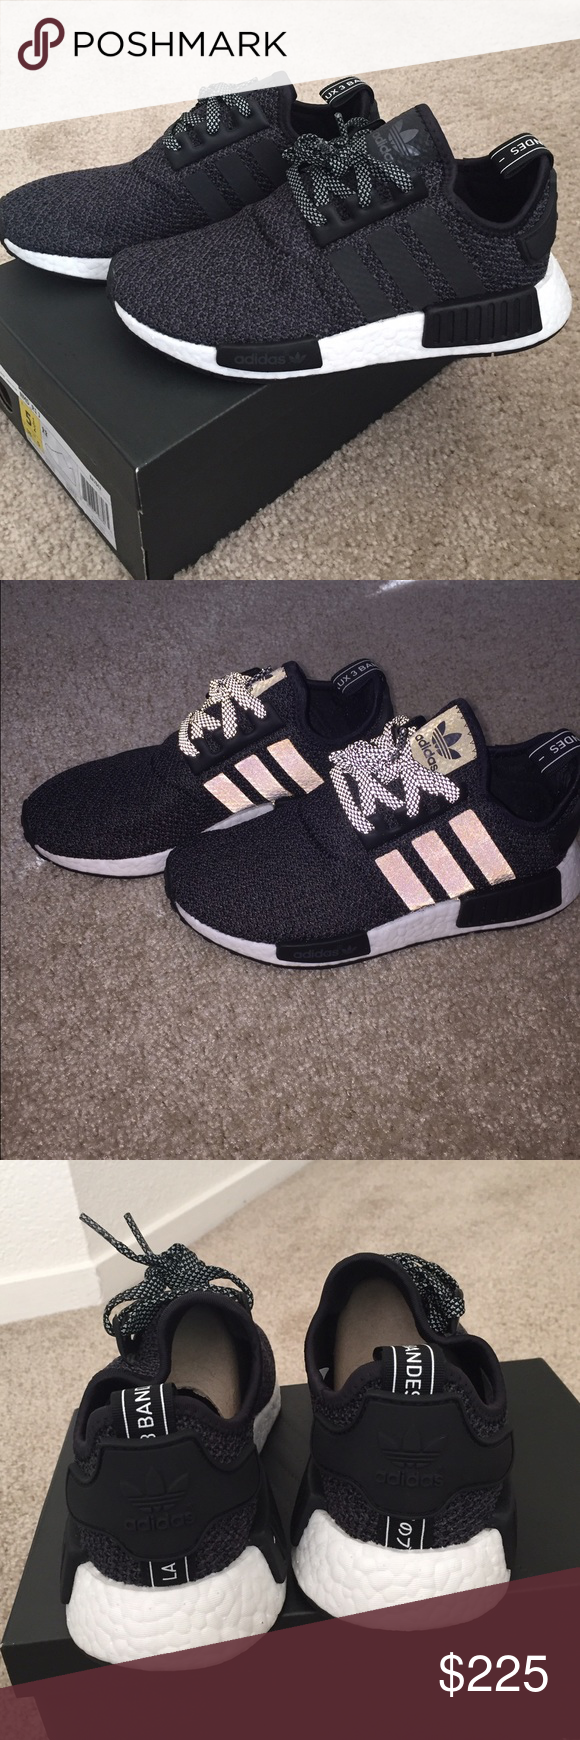 Brand new adidas NMD R1 size 5.5y (women s 7) Brand new in box d7d9b87f9d